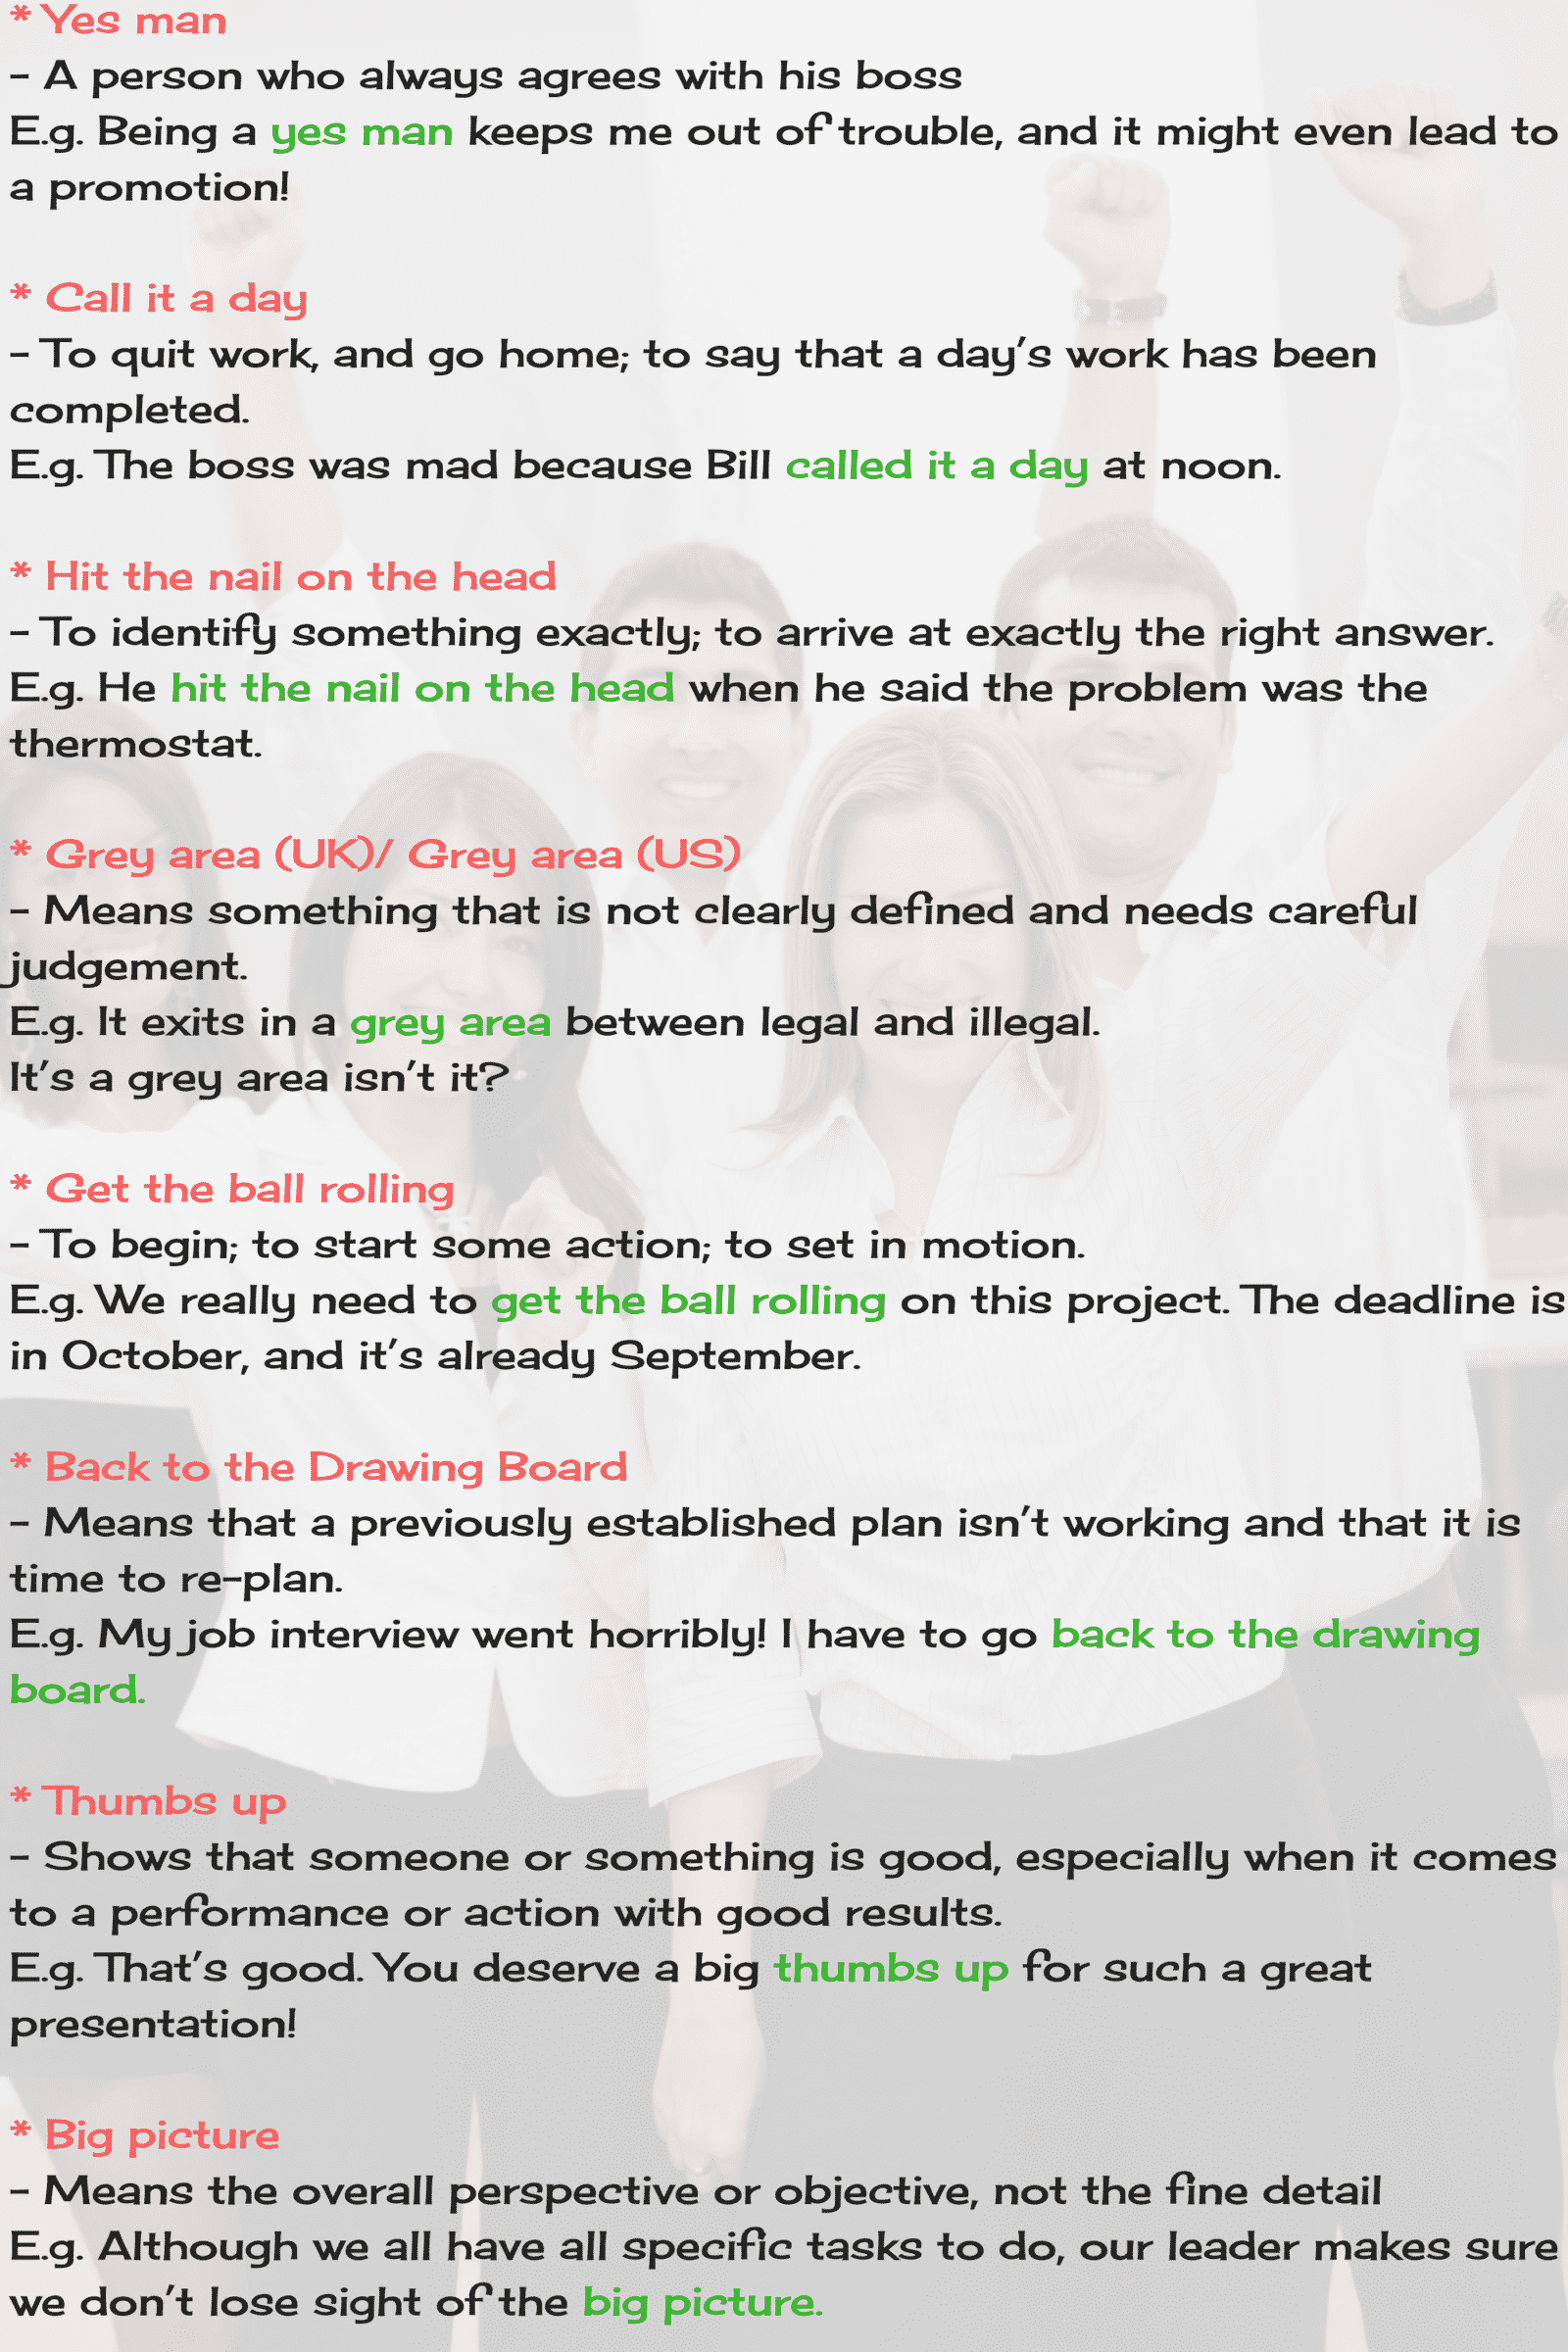 Business Idioms and Phrases